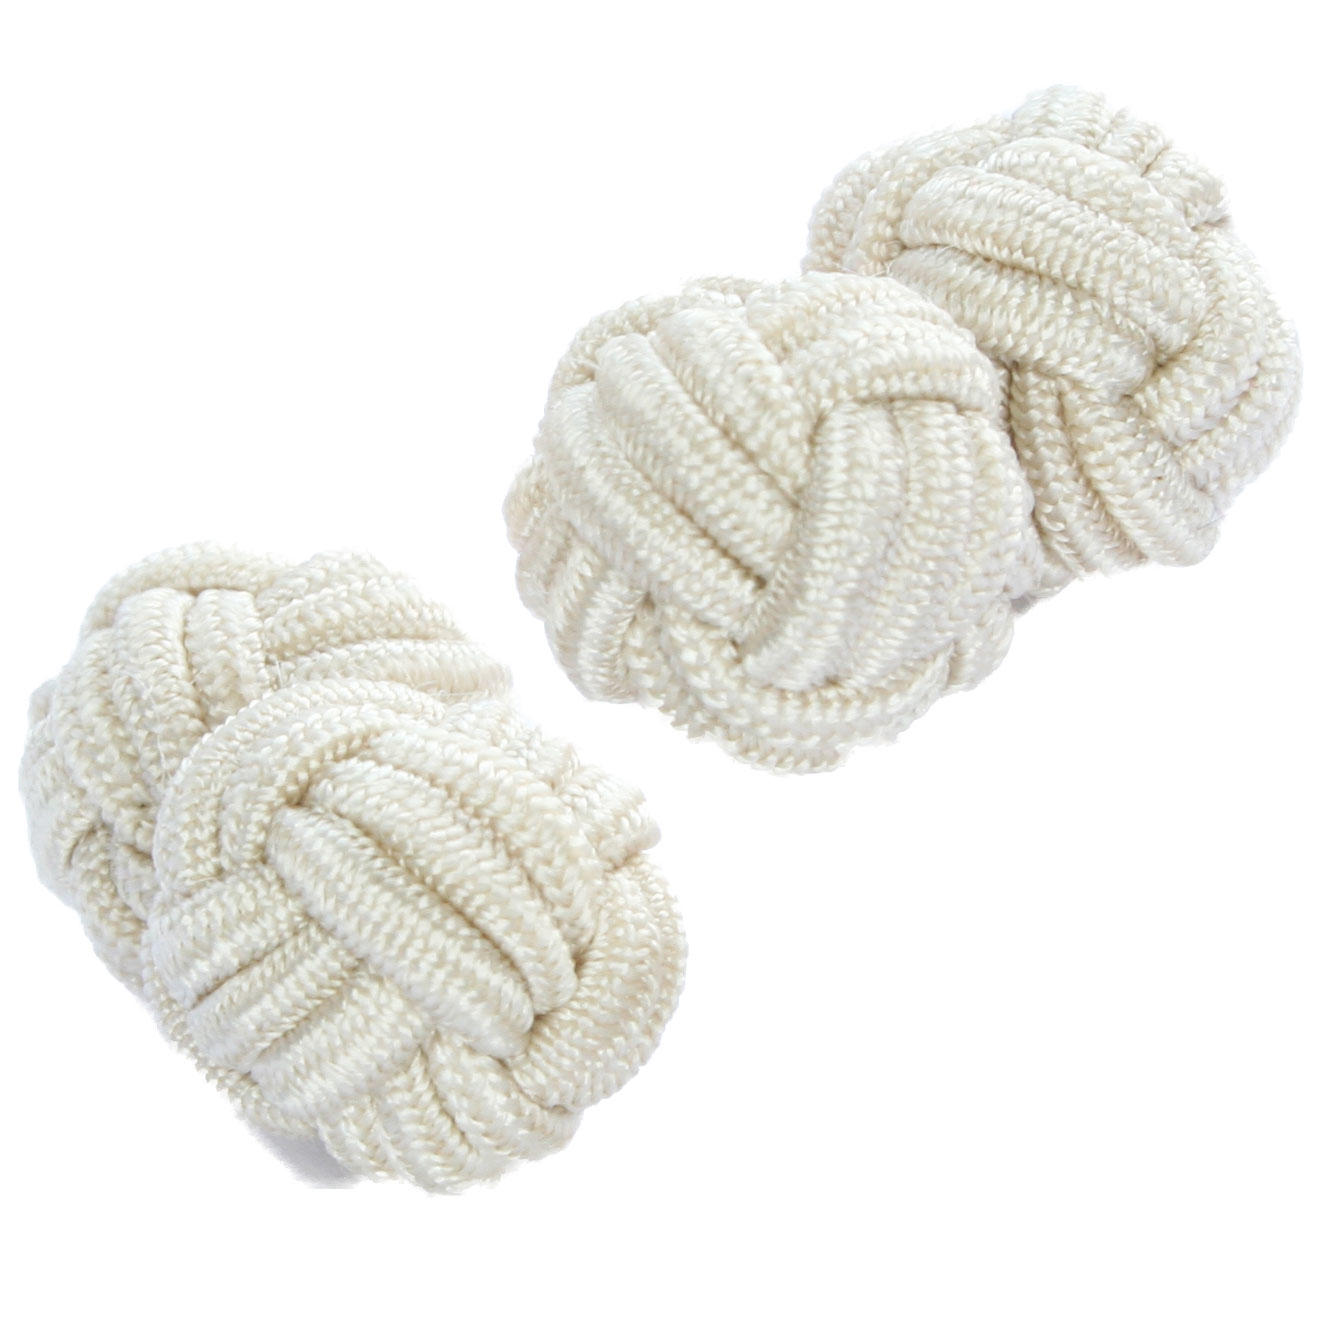 Light Beige Knot Cufflinks from Cuffs & Co